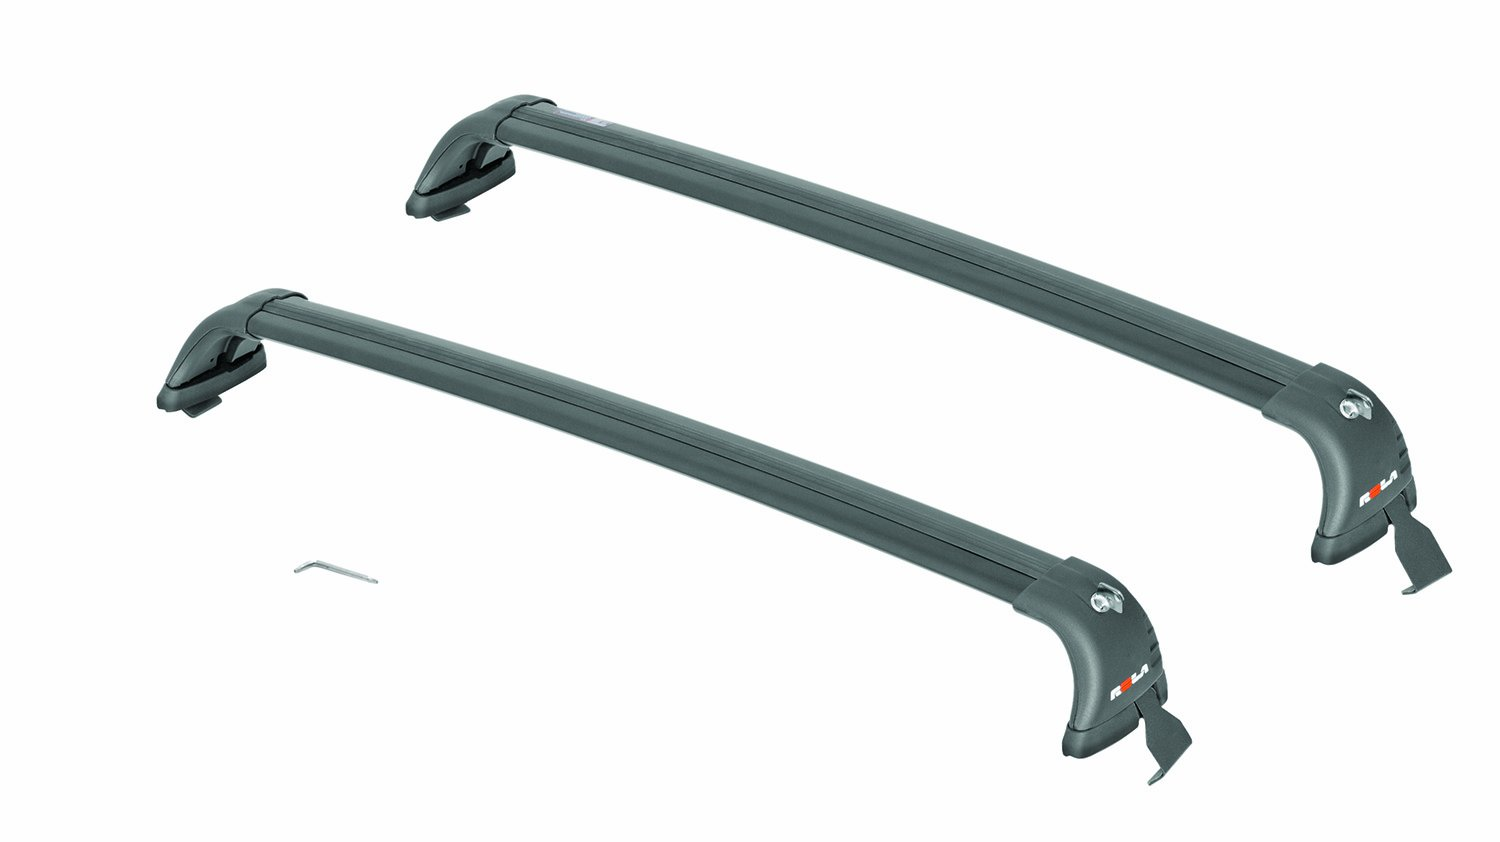 ROLA 59728 Removable Mount GTX Series Roof Rack for Toyota Prius